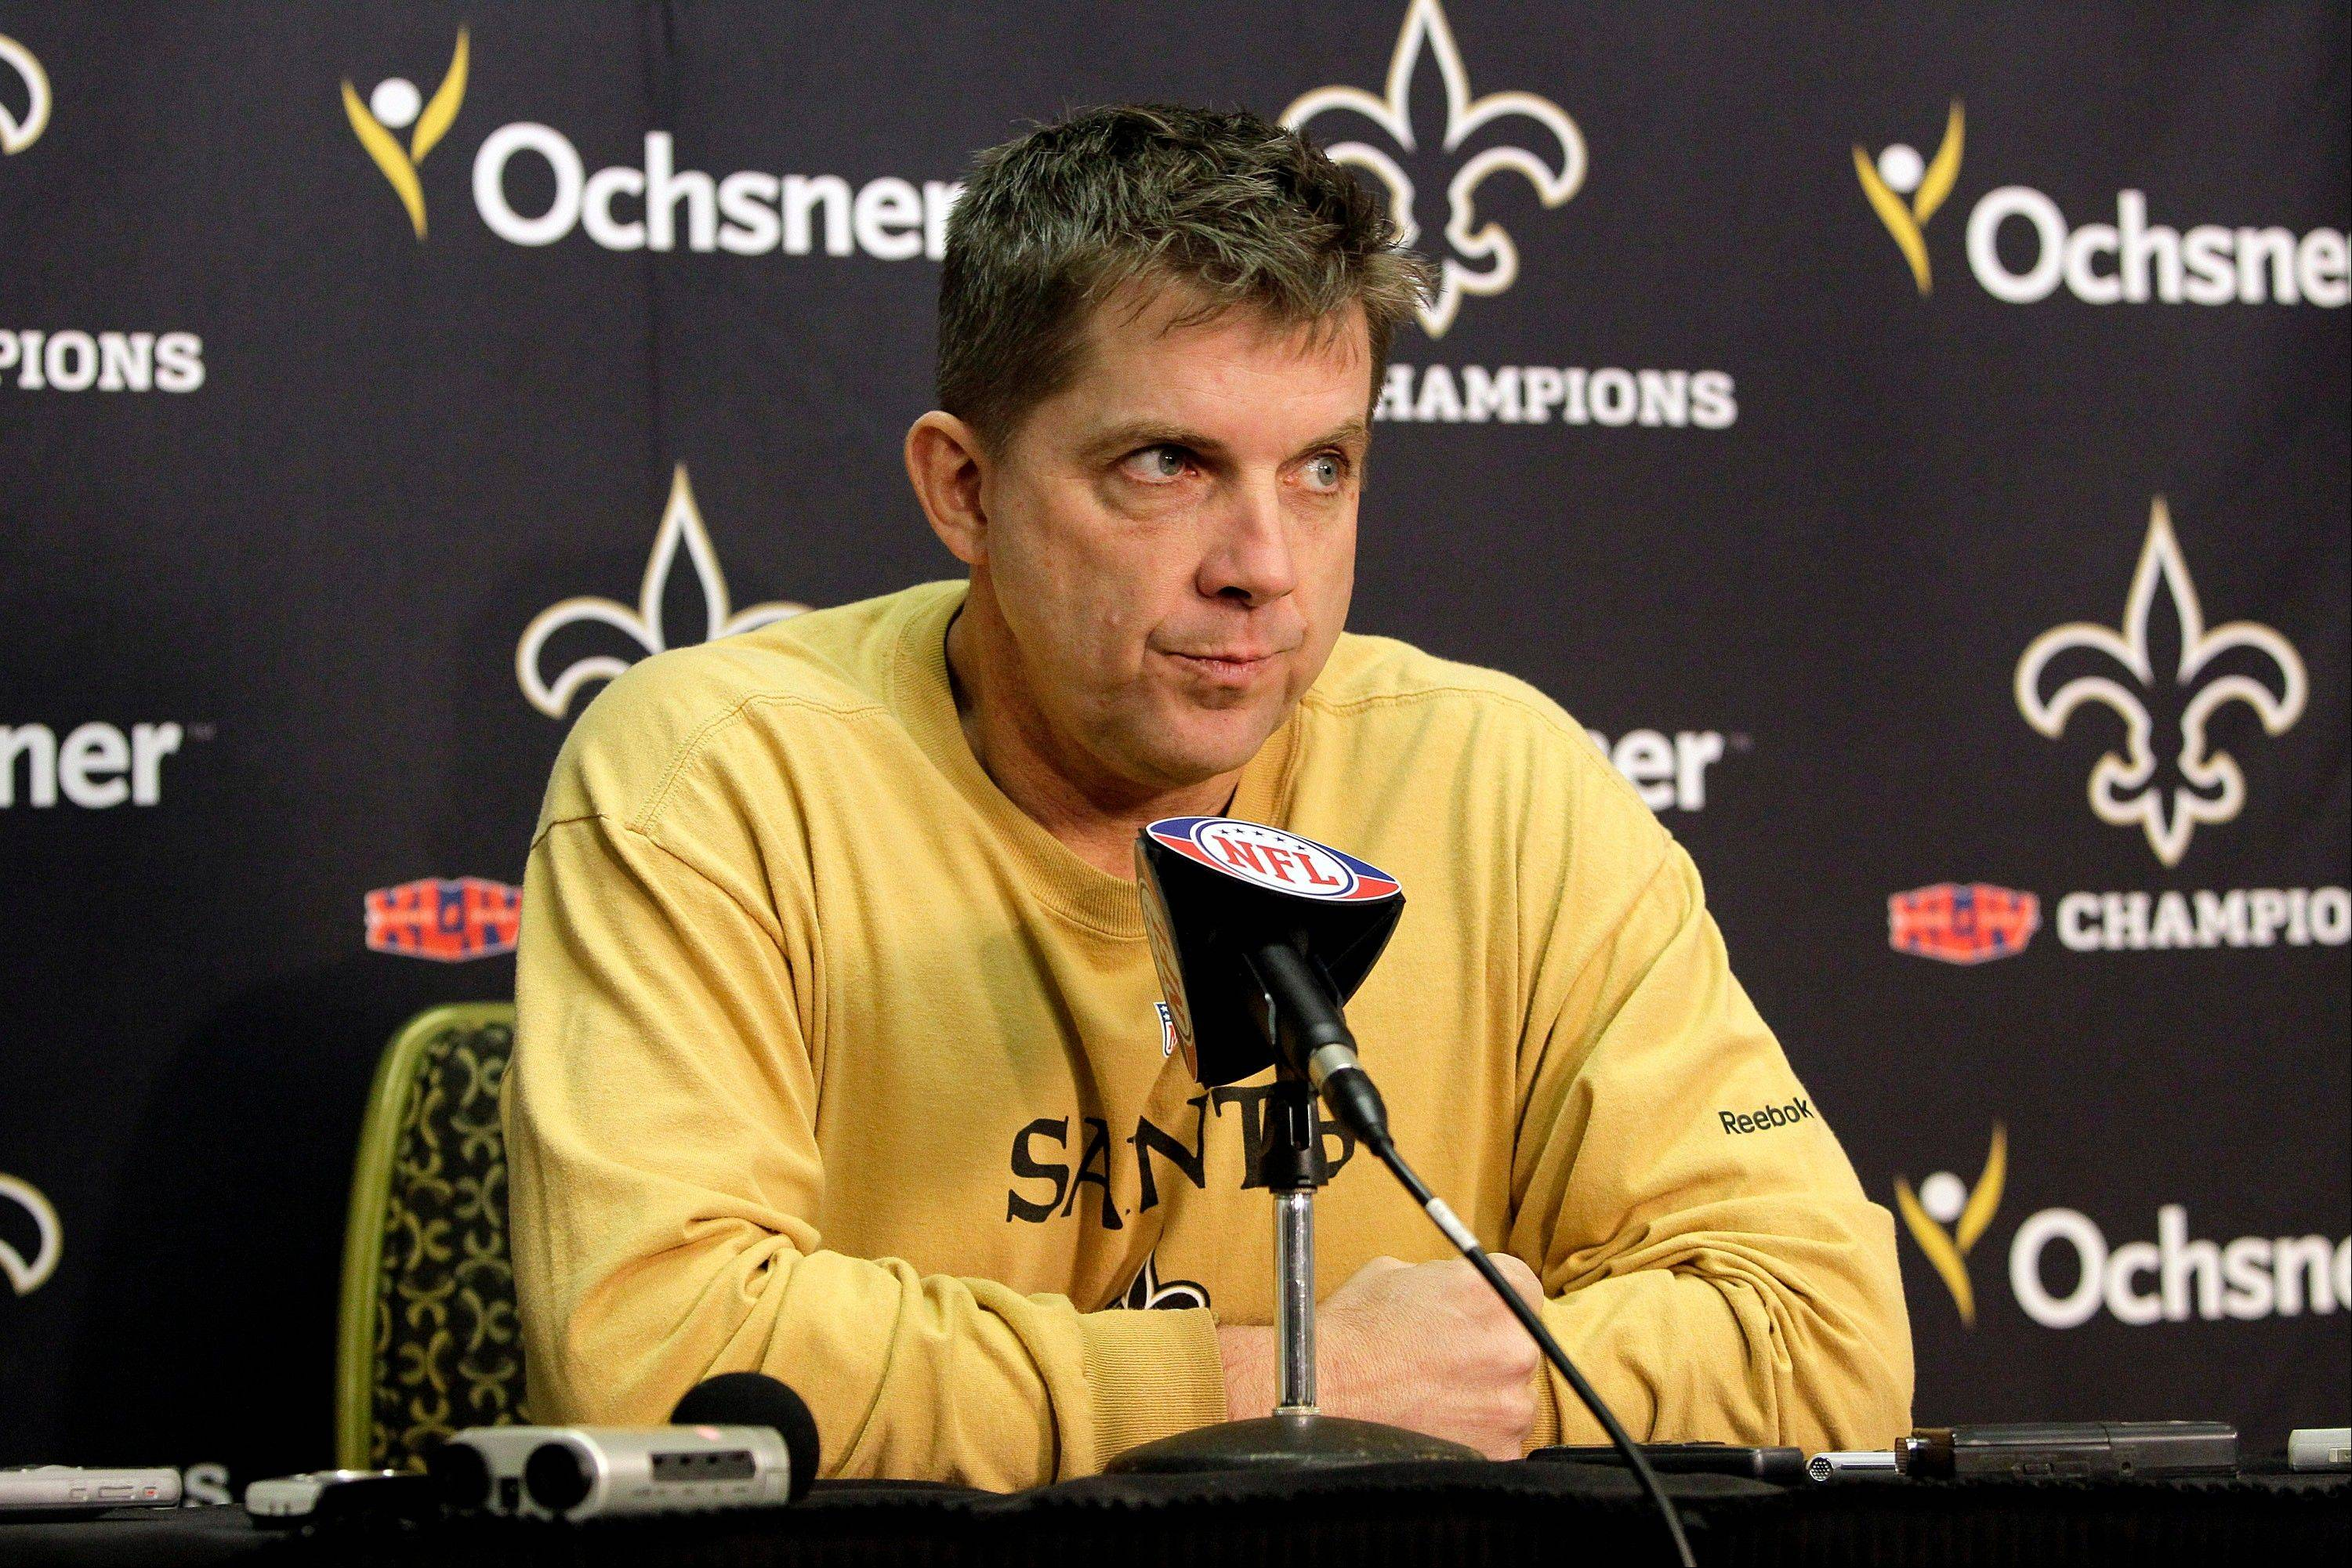 It's understandable that Naperville would stand up for native Sean Payton, writes Mike Imrem, but his transgressions expose a serious character flaw.